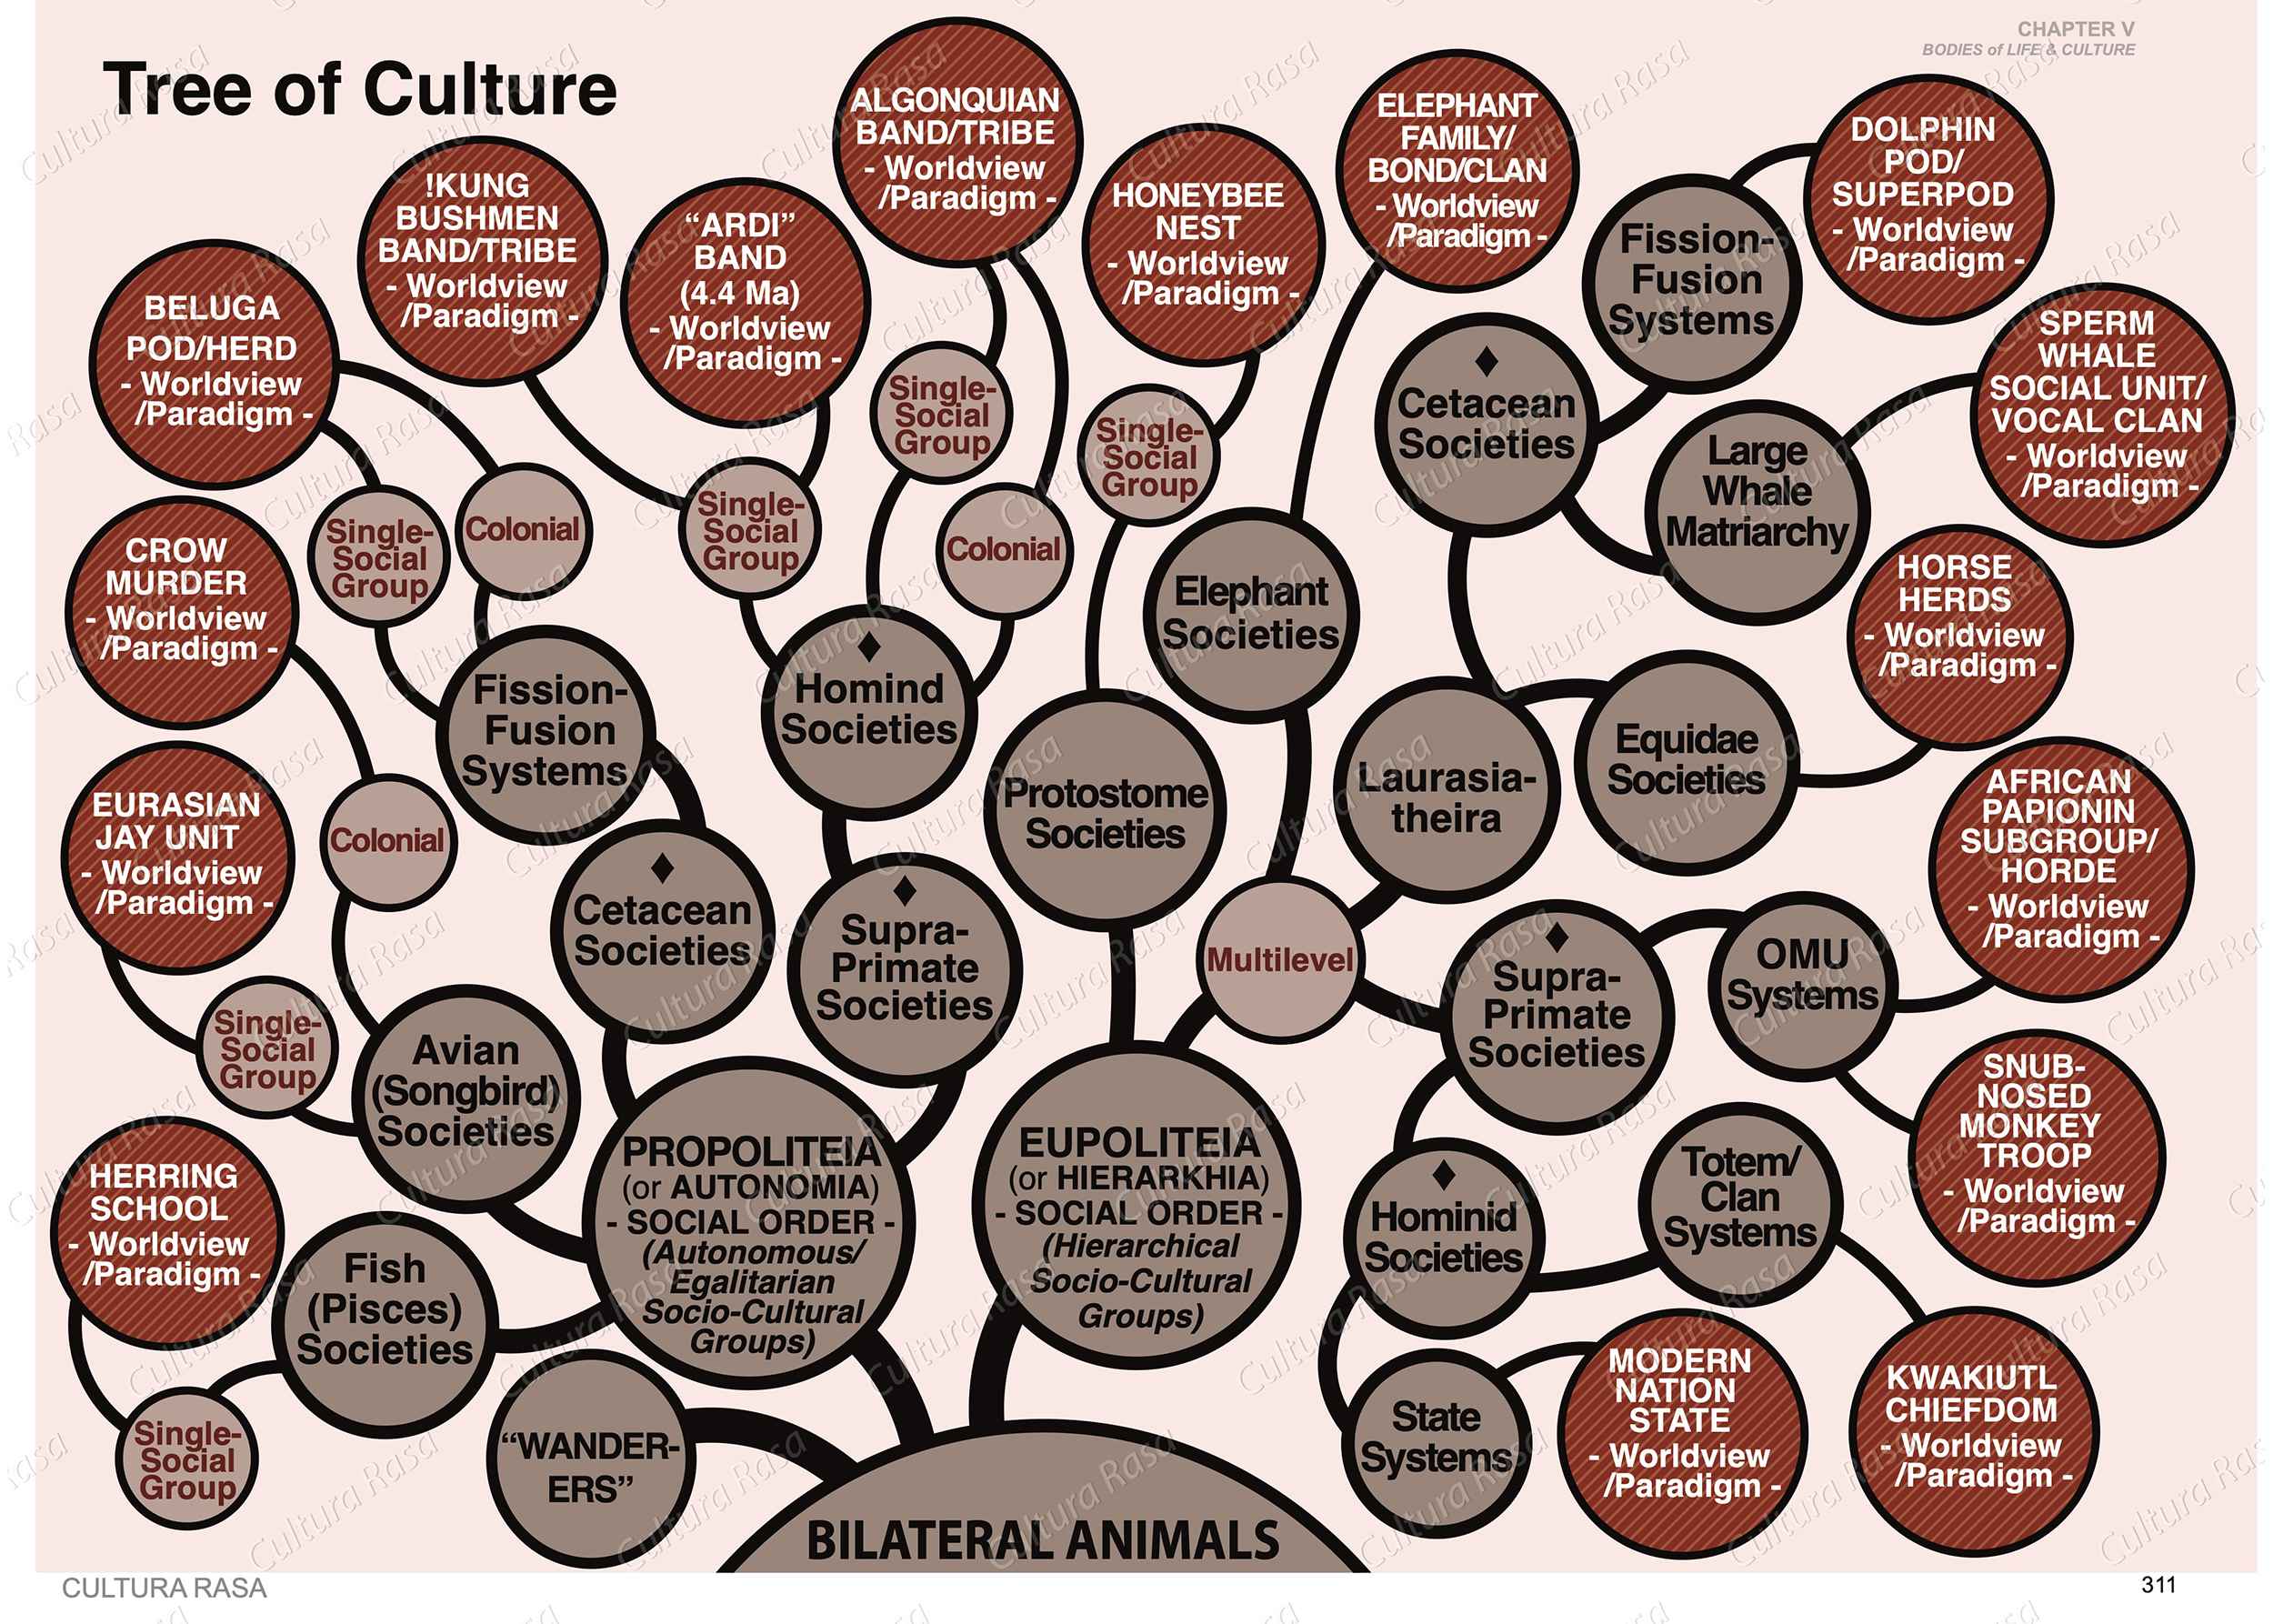 Classification of cultural systems based on their social organization.